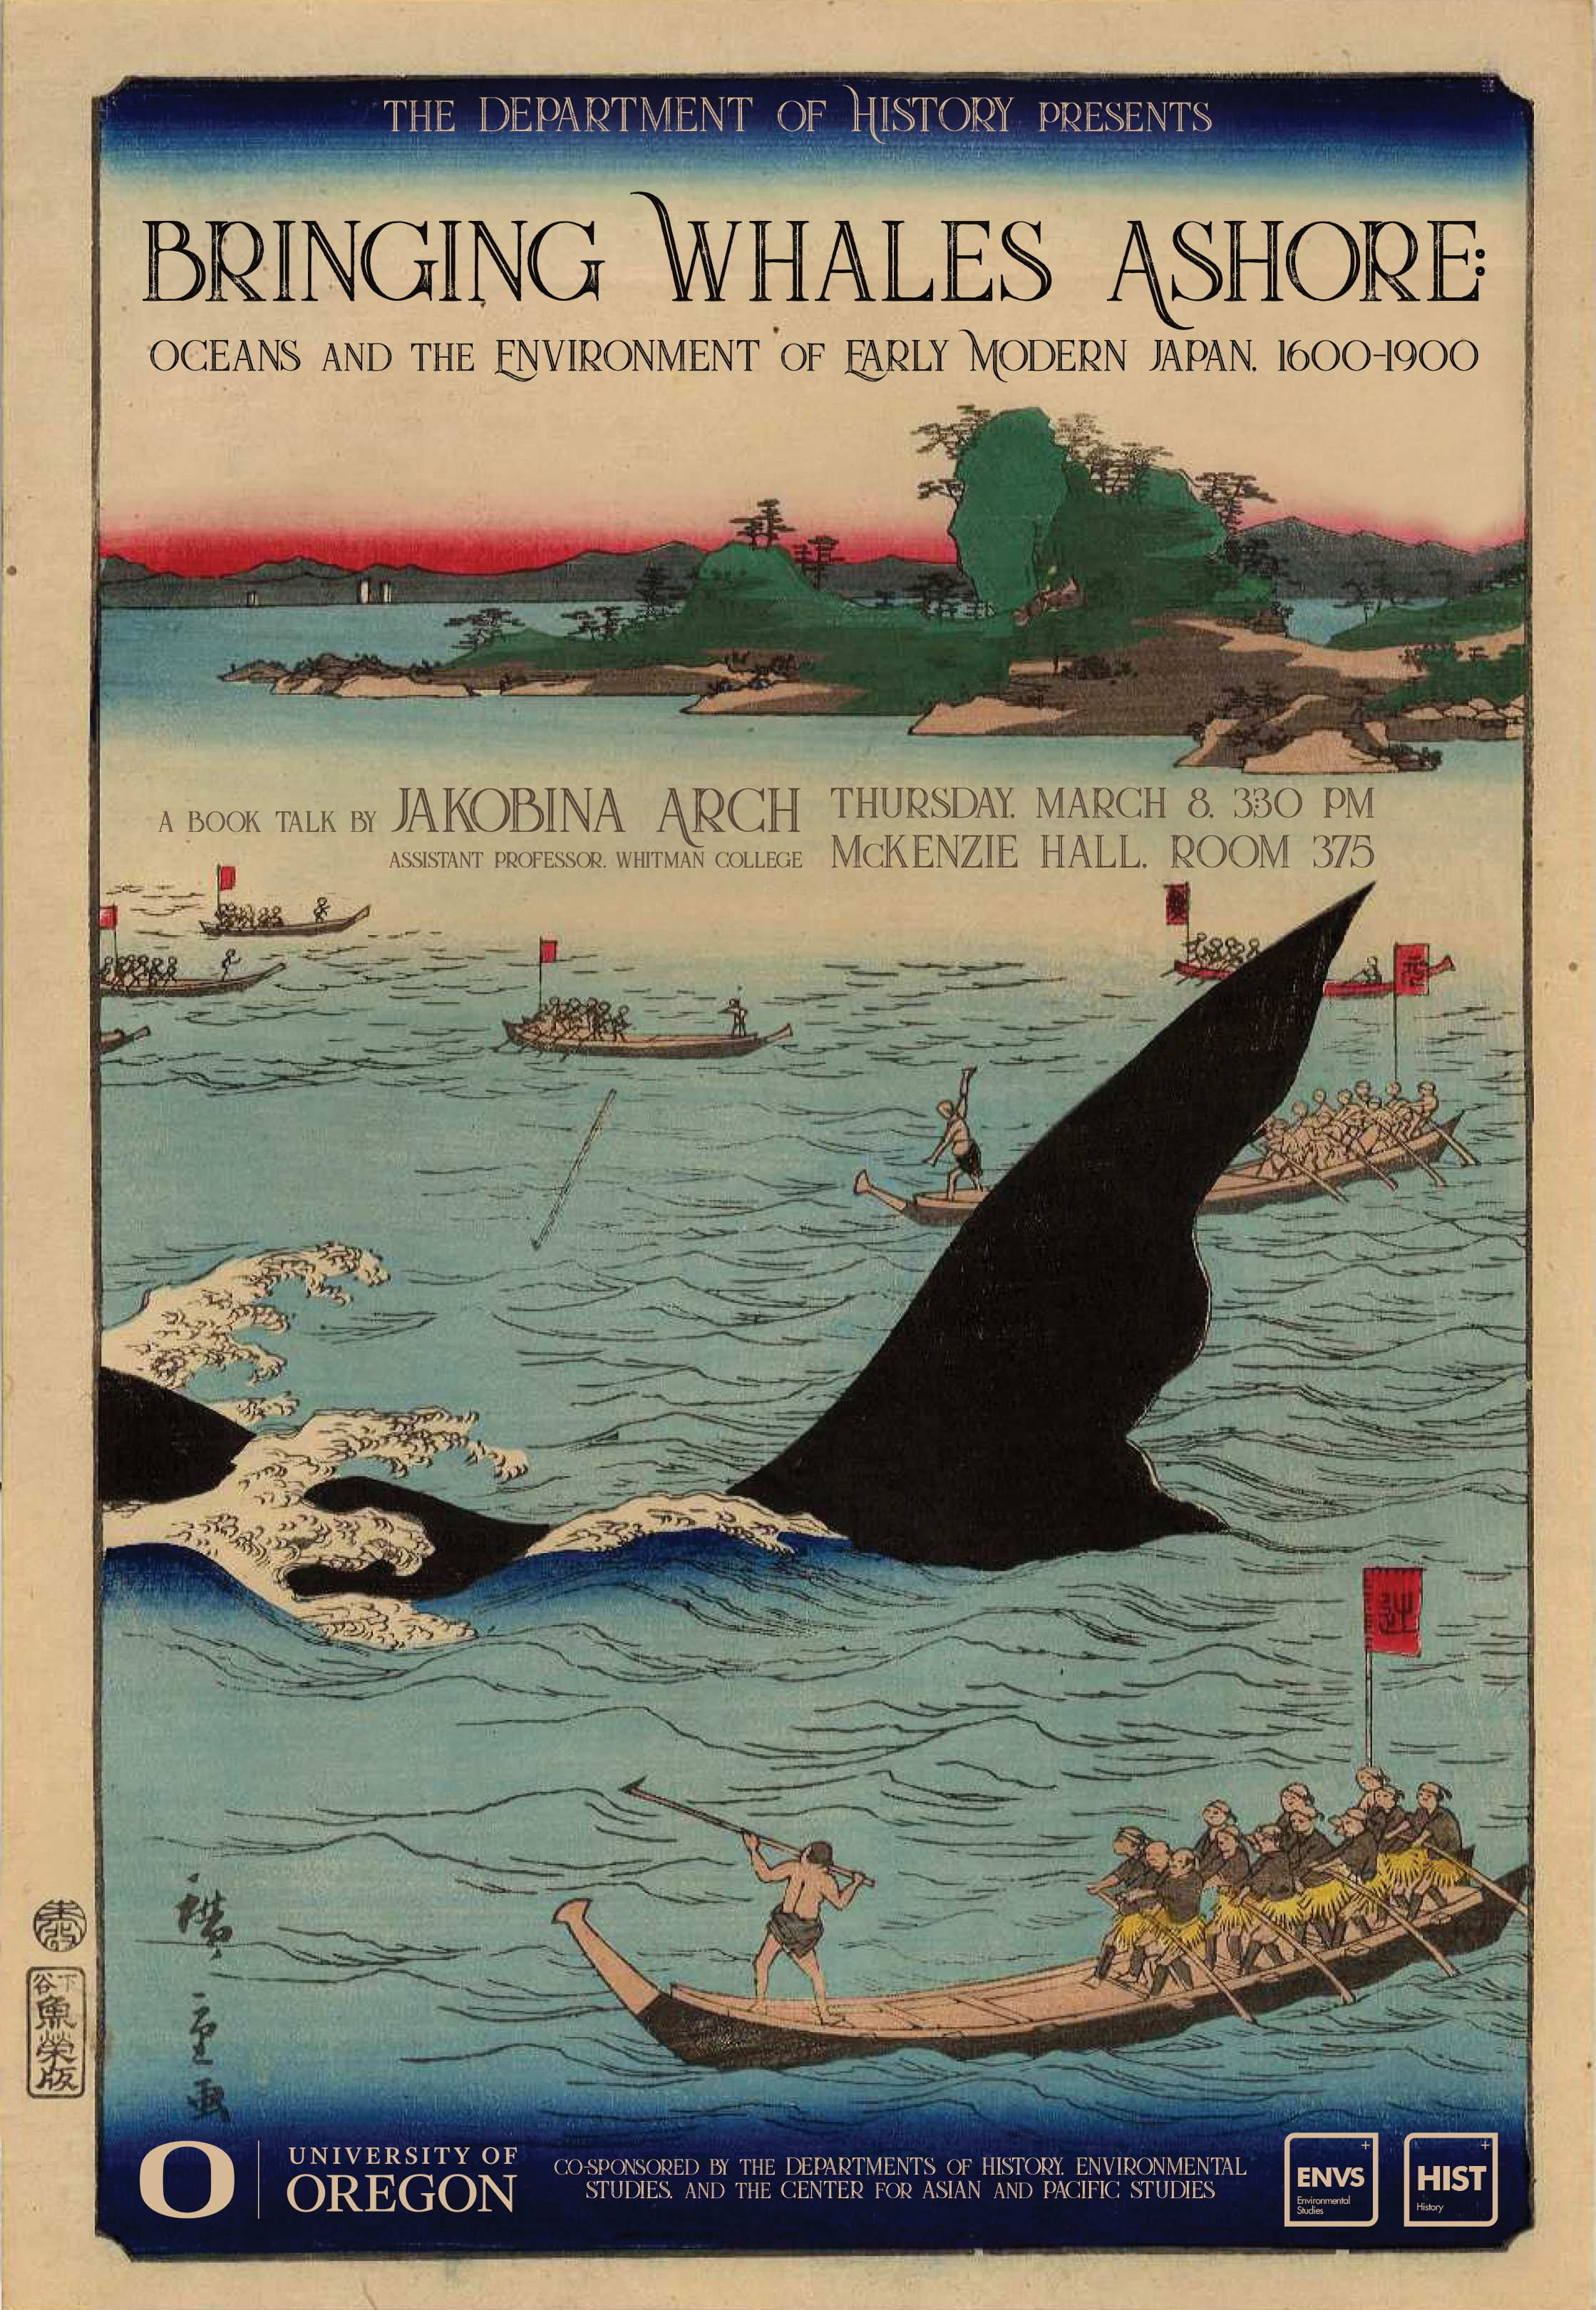 Bringing Whales Ashore poster